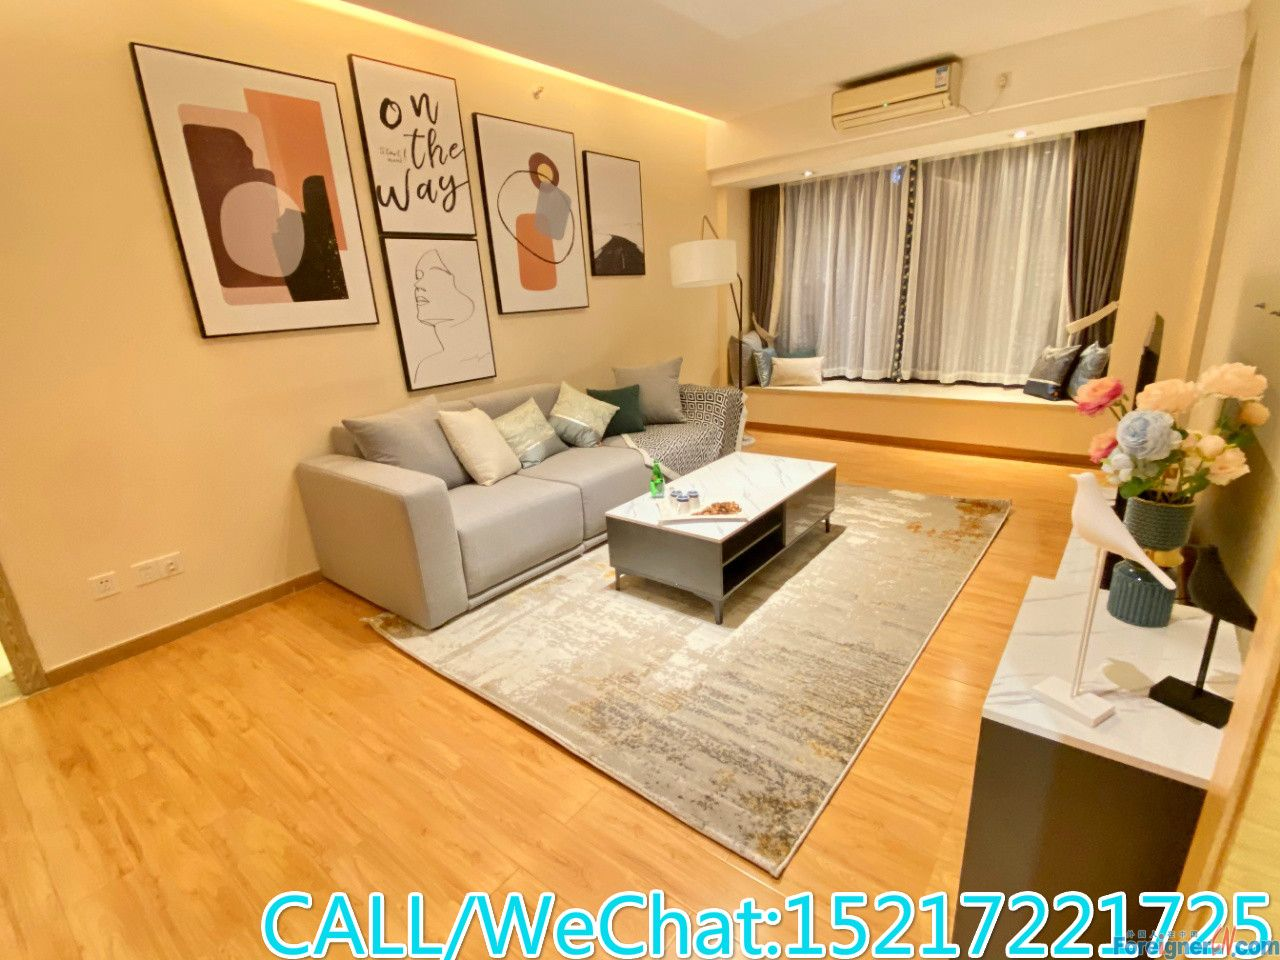 Starry Winking-Morden and Nice/Clean and Bright/High Quality Furnitures/City Center.